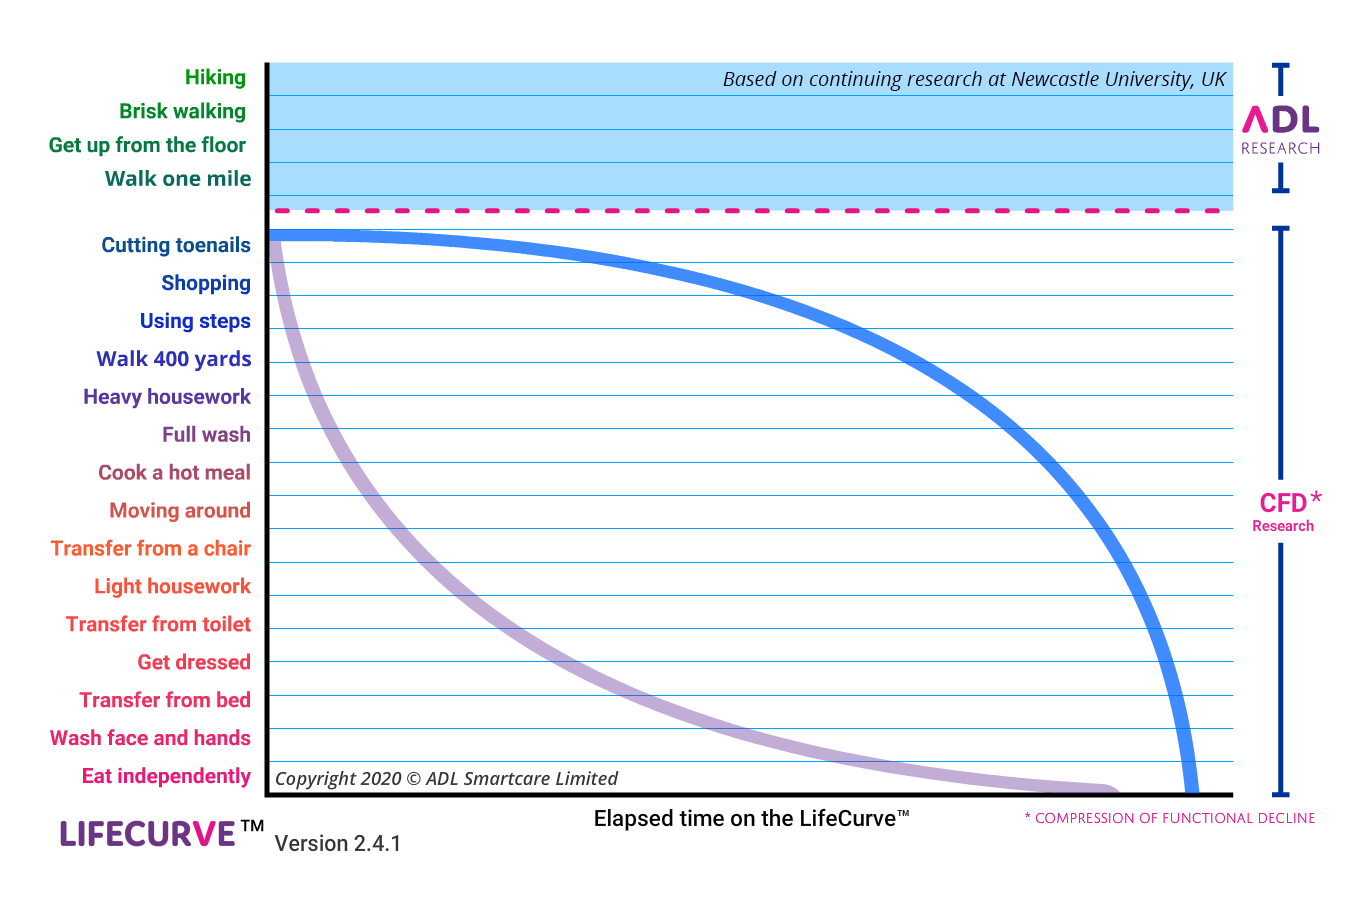 LifeCurve graph